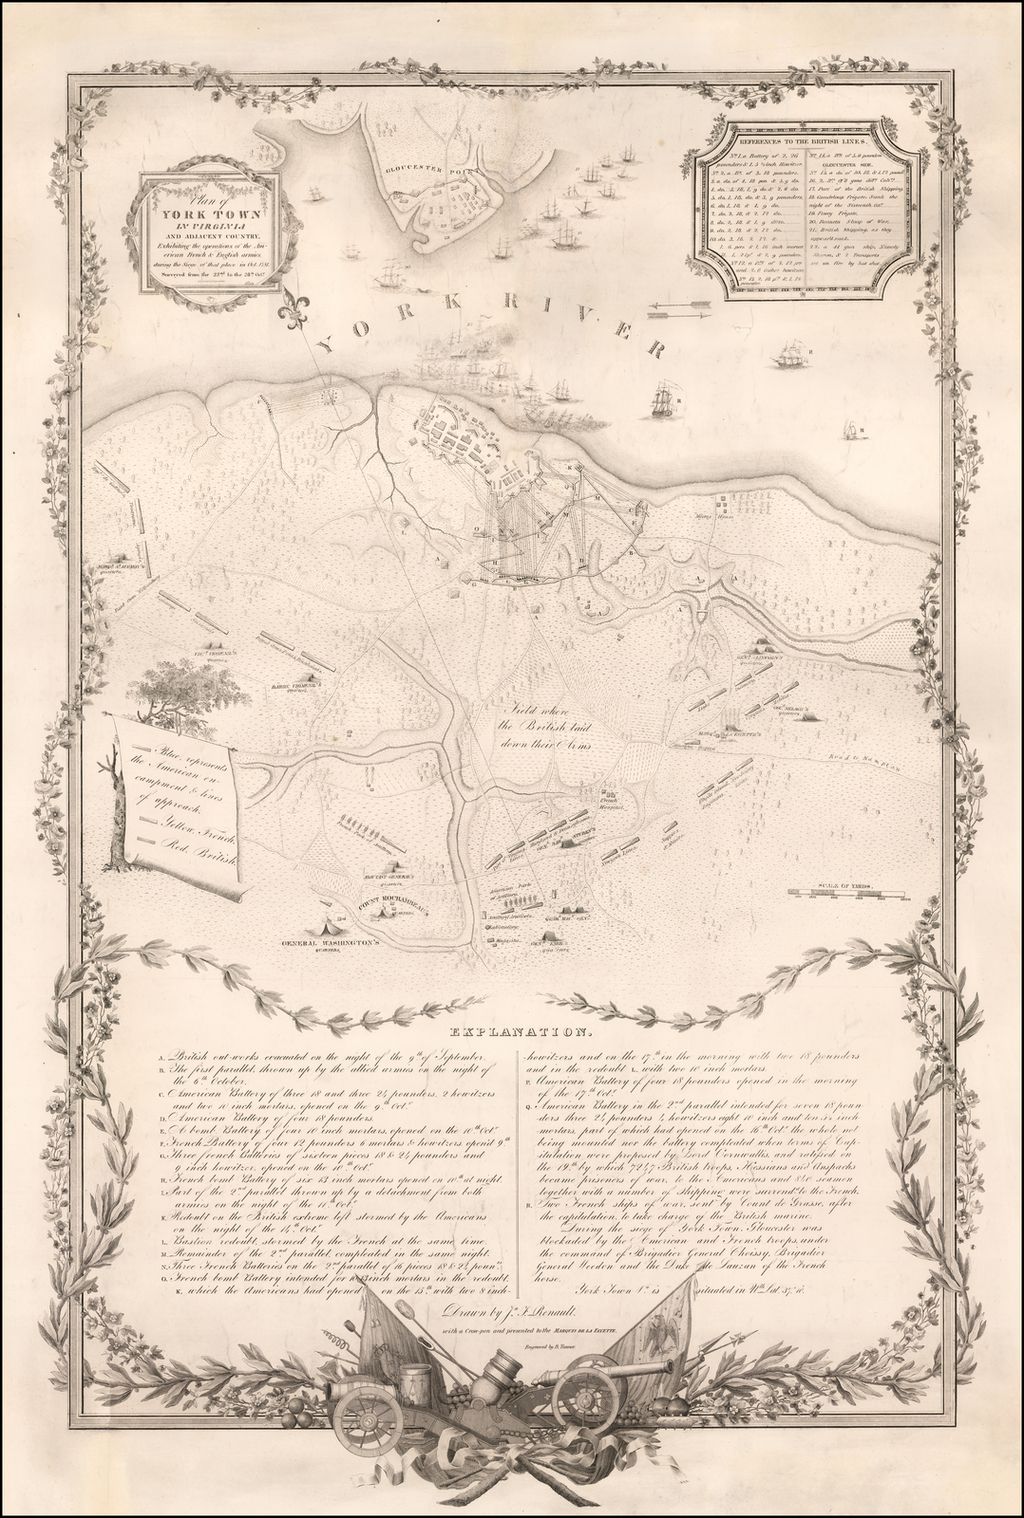 Plan of York Town in Virginia And Adjacent Country,  Exhibiting the operations of the American French and British armies, during the Siege of that place in October 1781.  Surveyed from the 2nd to the 28th Octr. By Henry Schenk Tanner / Sebastian Bauman / J.F. Renault